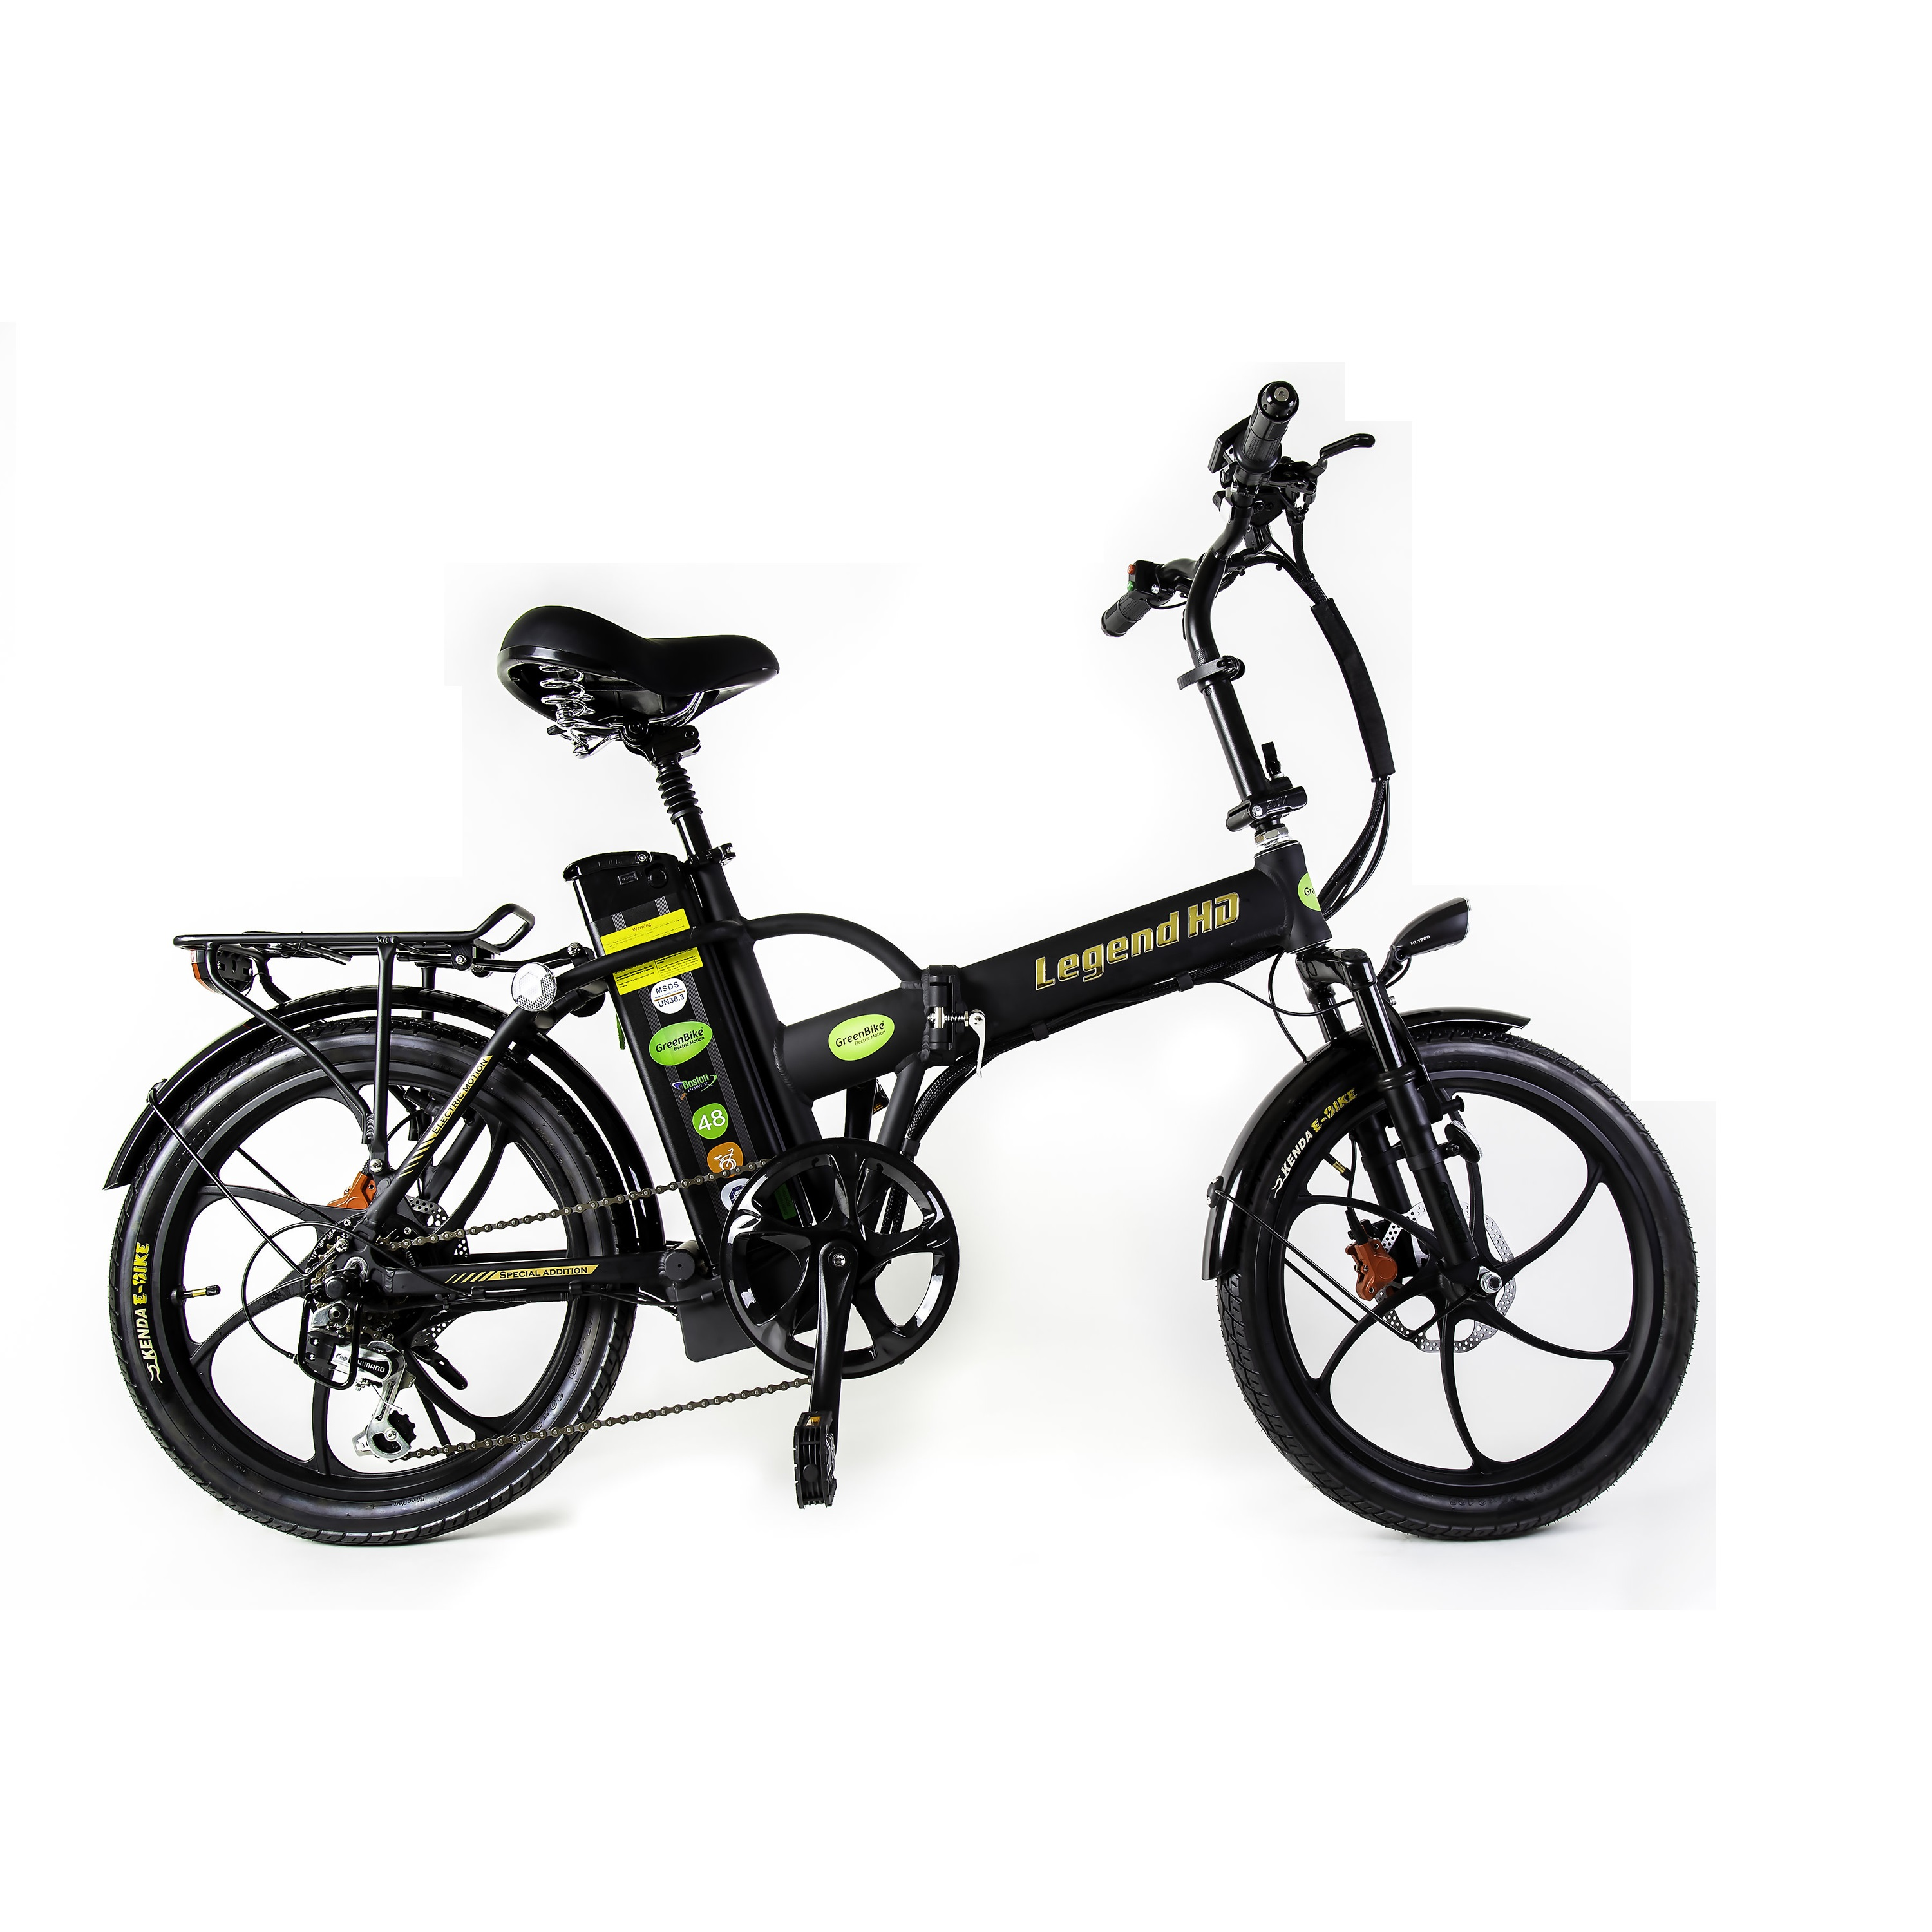 Green Bike Electric Motion Legend Hd Motorized Foldable Bike